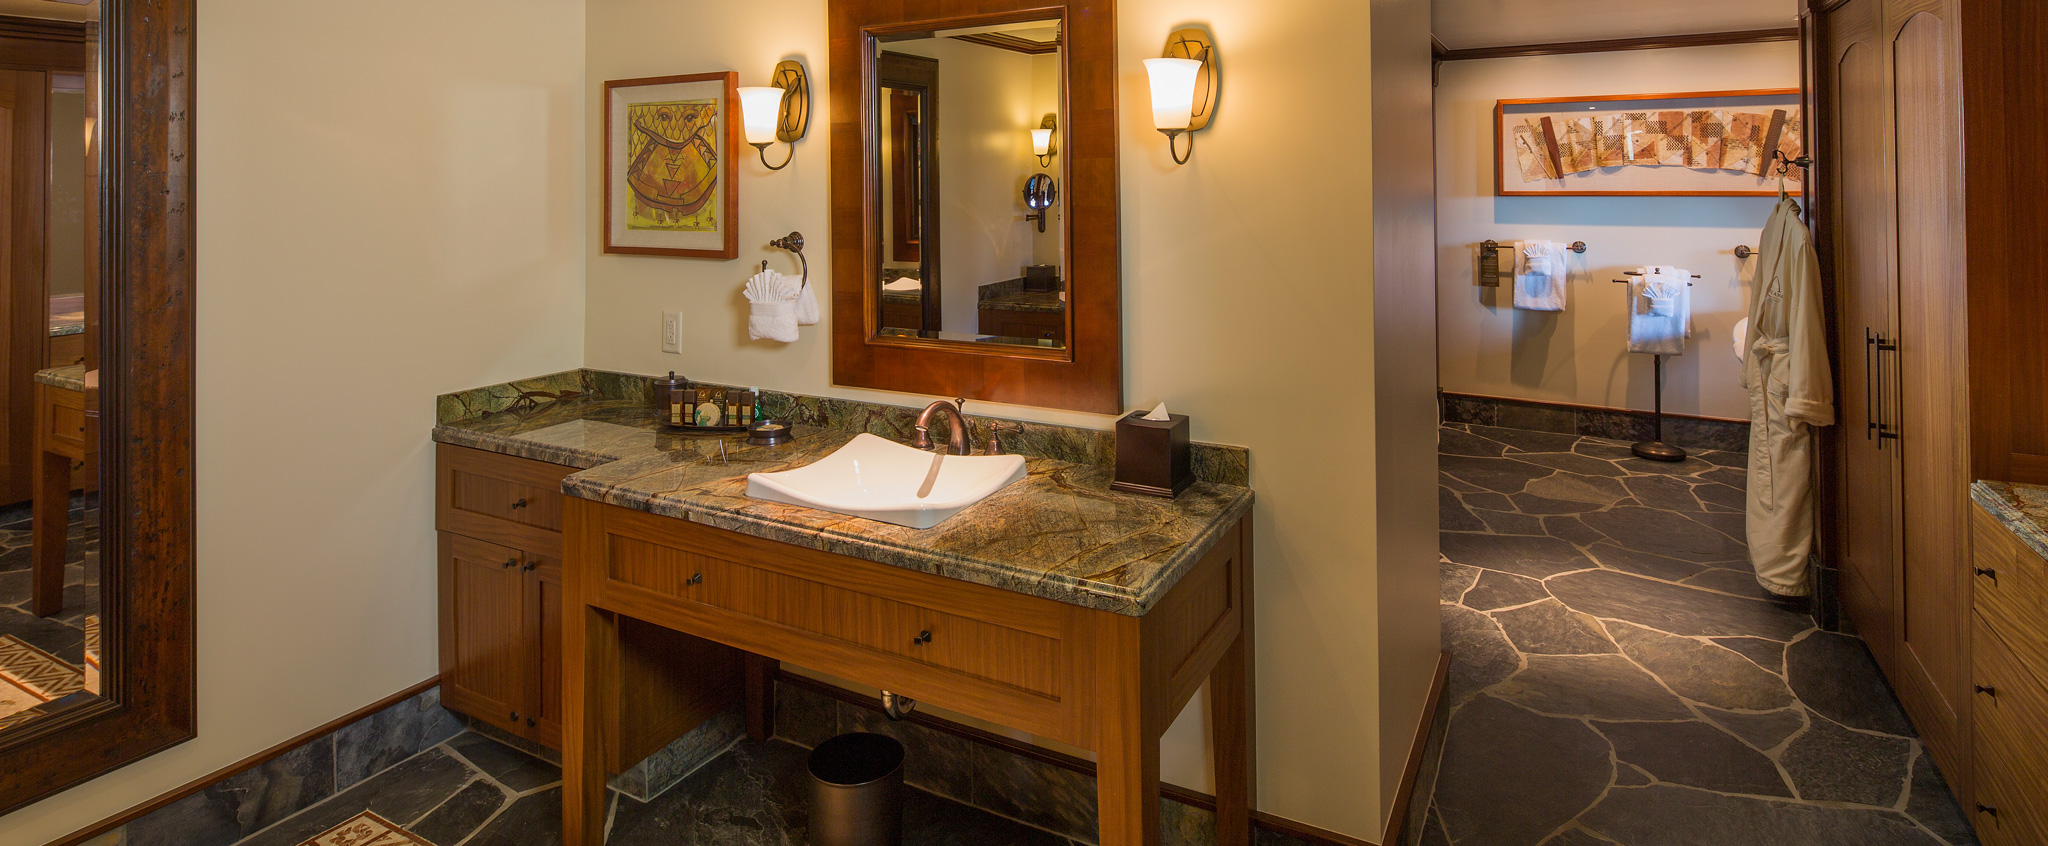 Two Bedroom Suite | Aulani Hawaii Resort & Spa